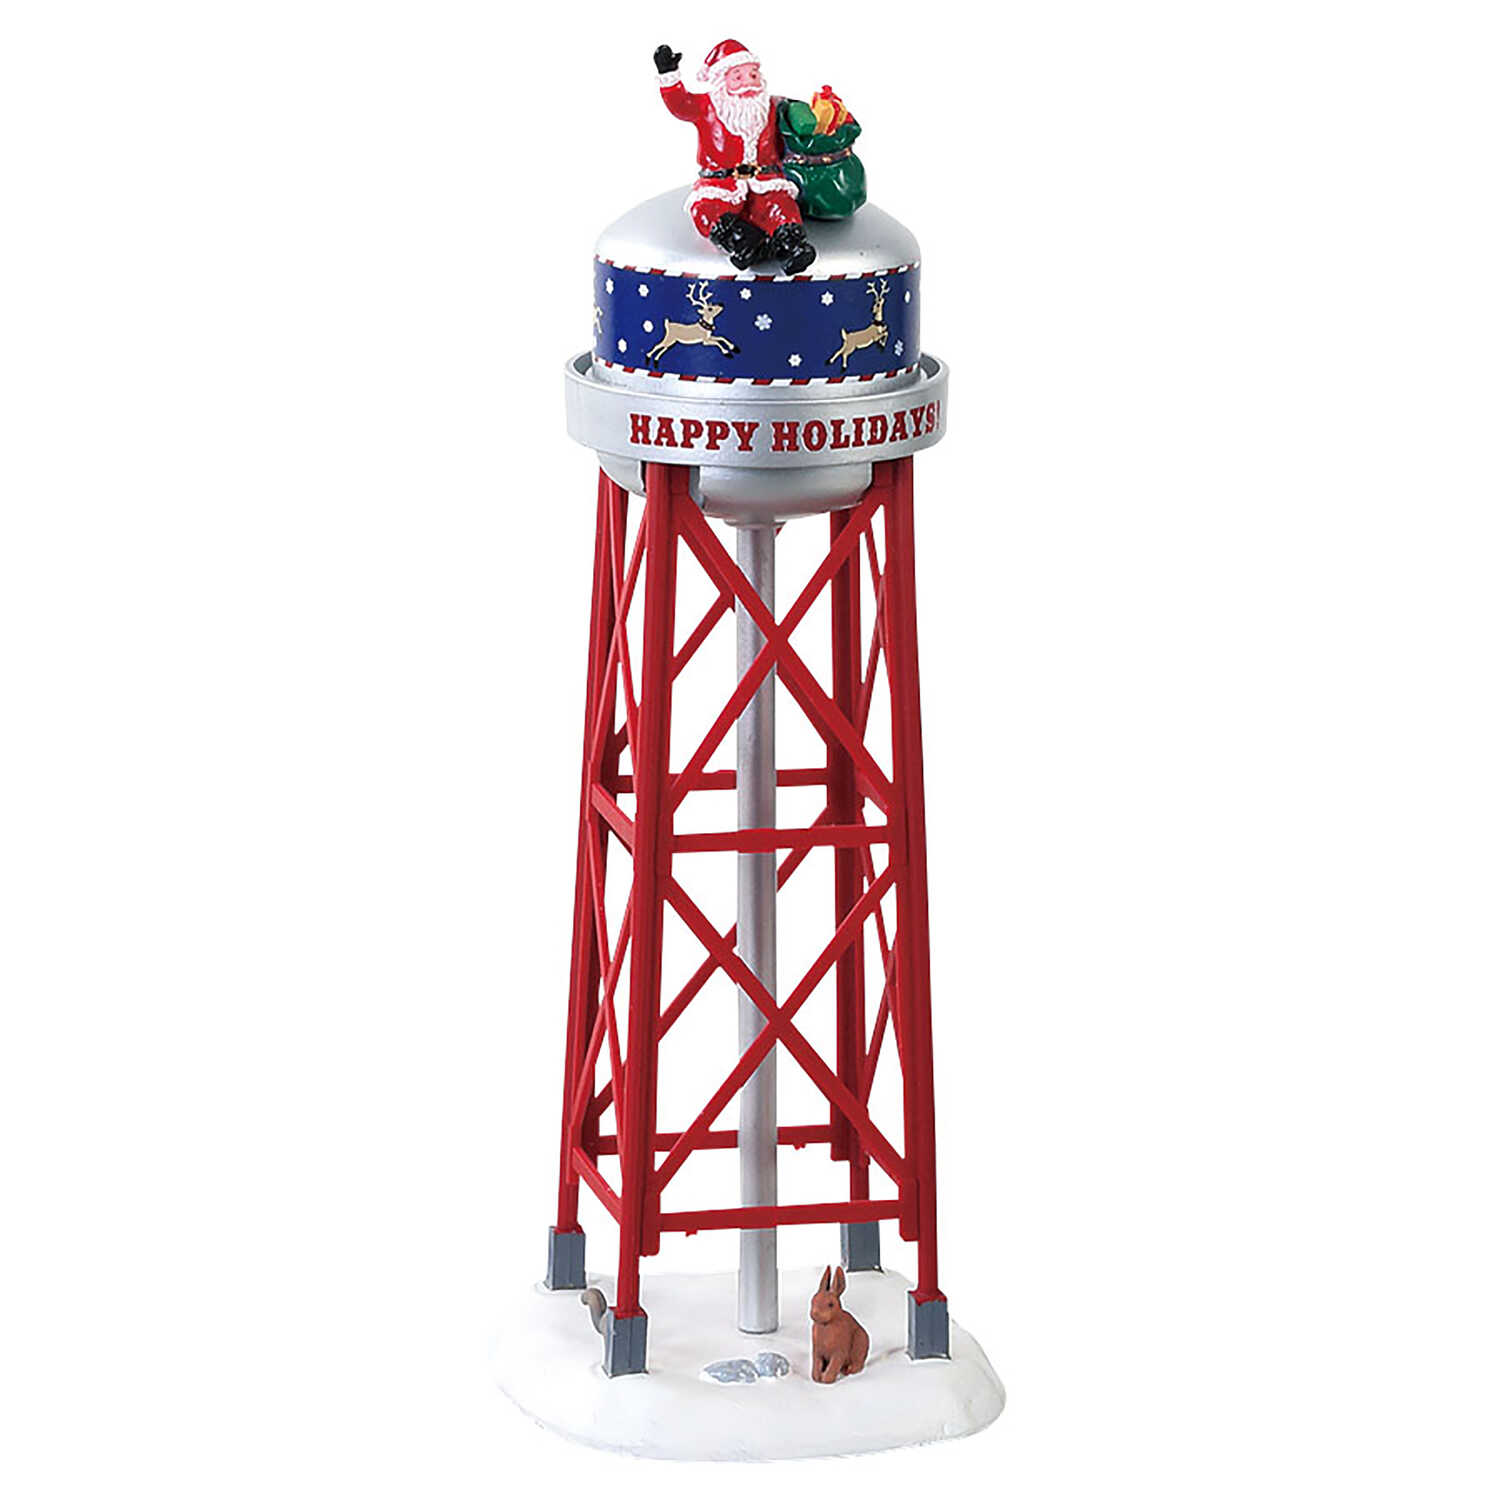 Lemax  Christmas Holiday Tower  Tabletop Decoration  Multicolored  Plastic  1 pk